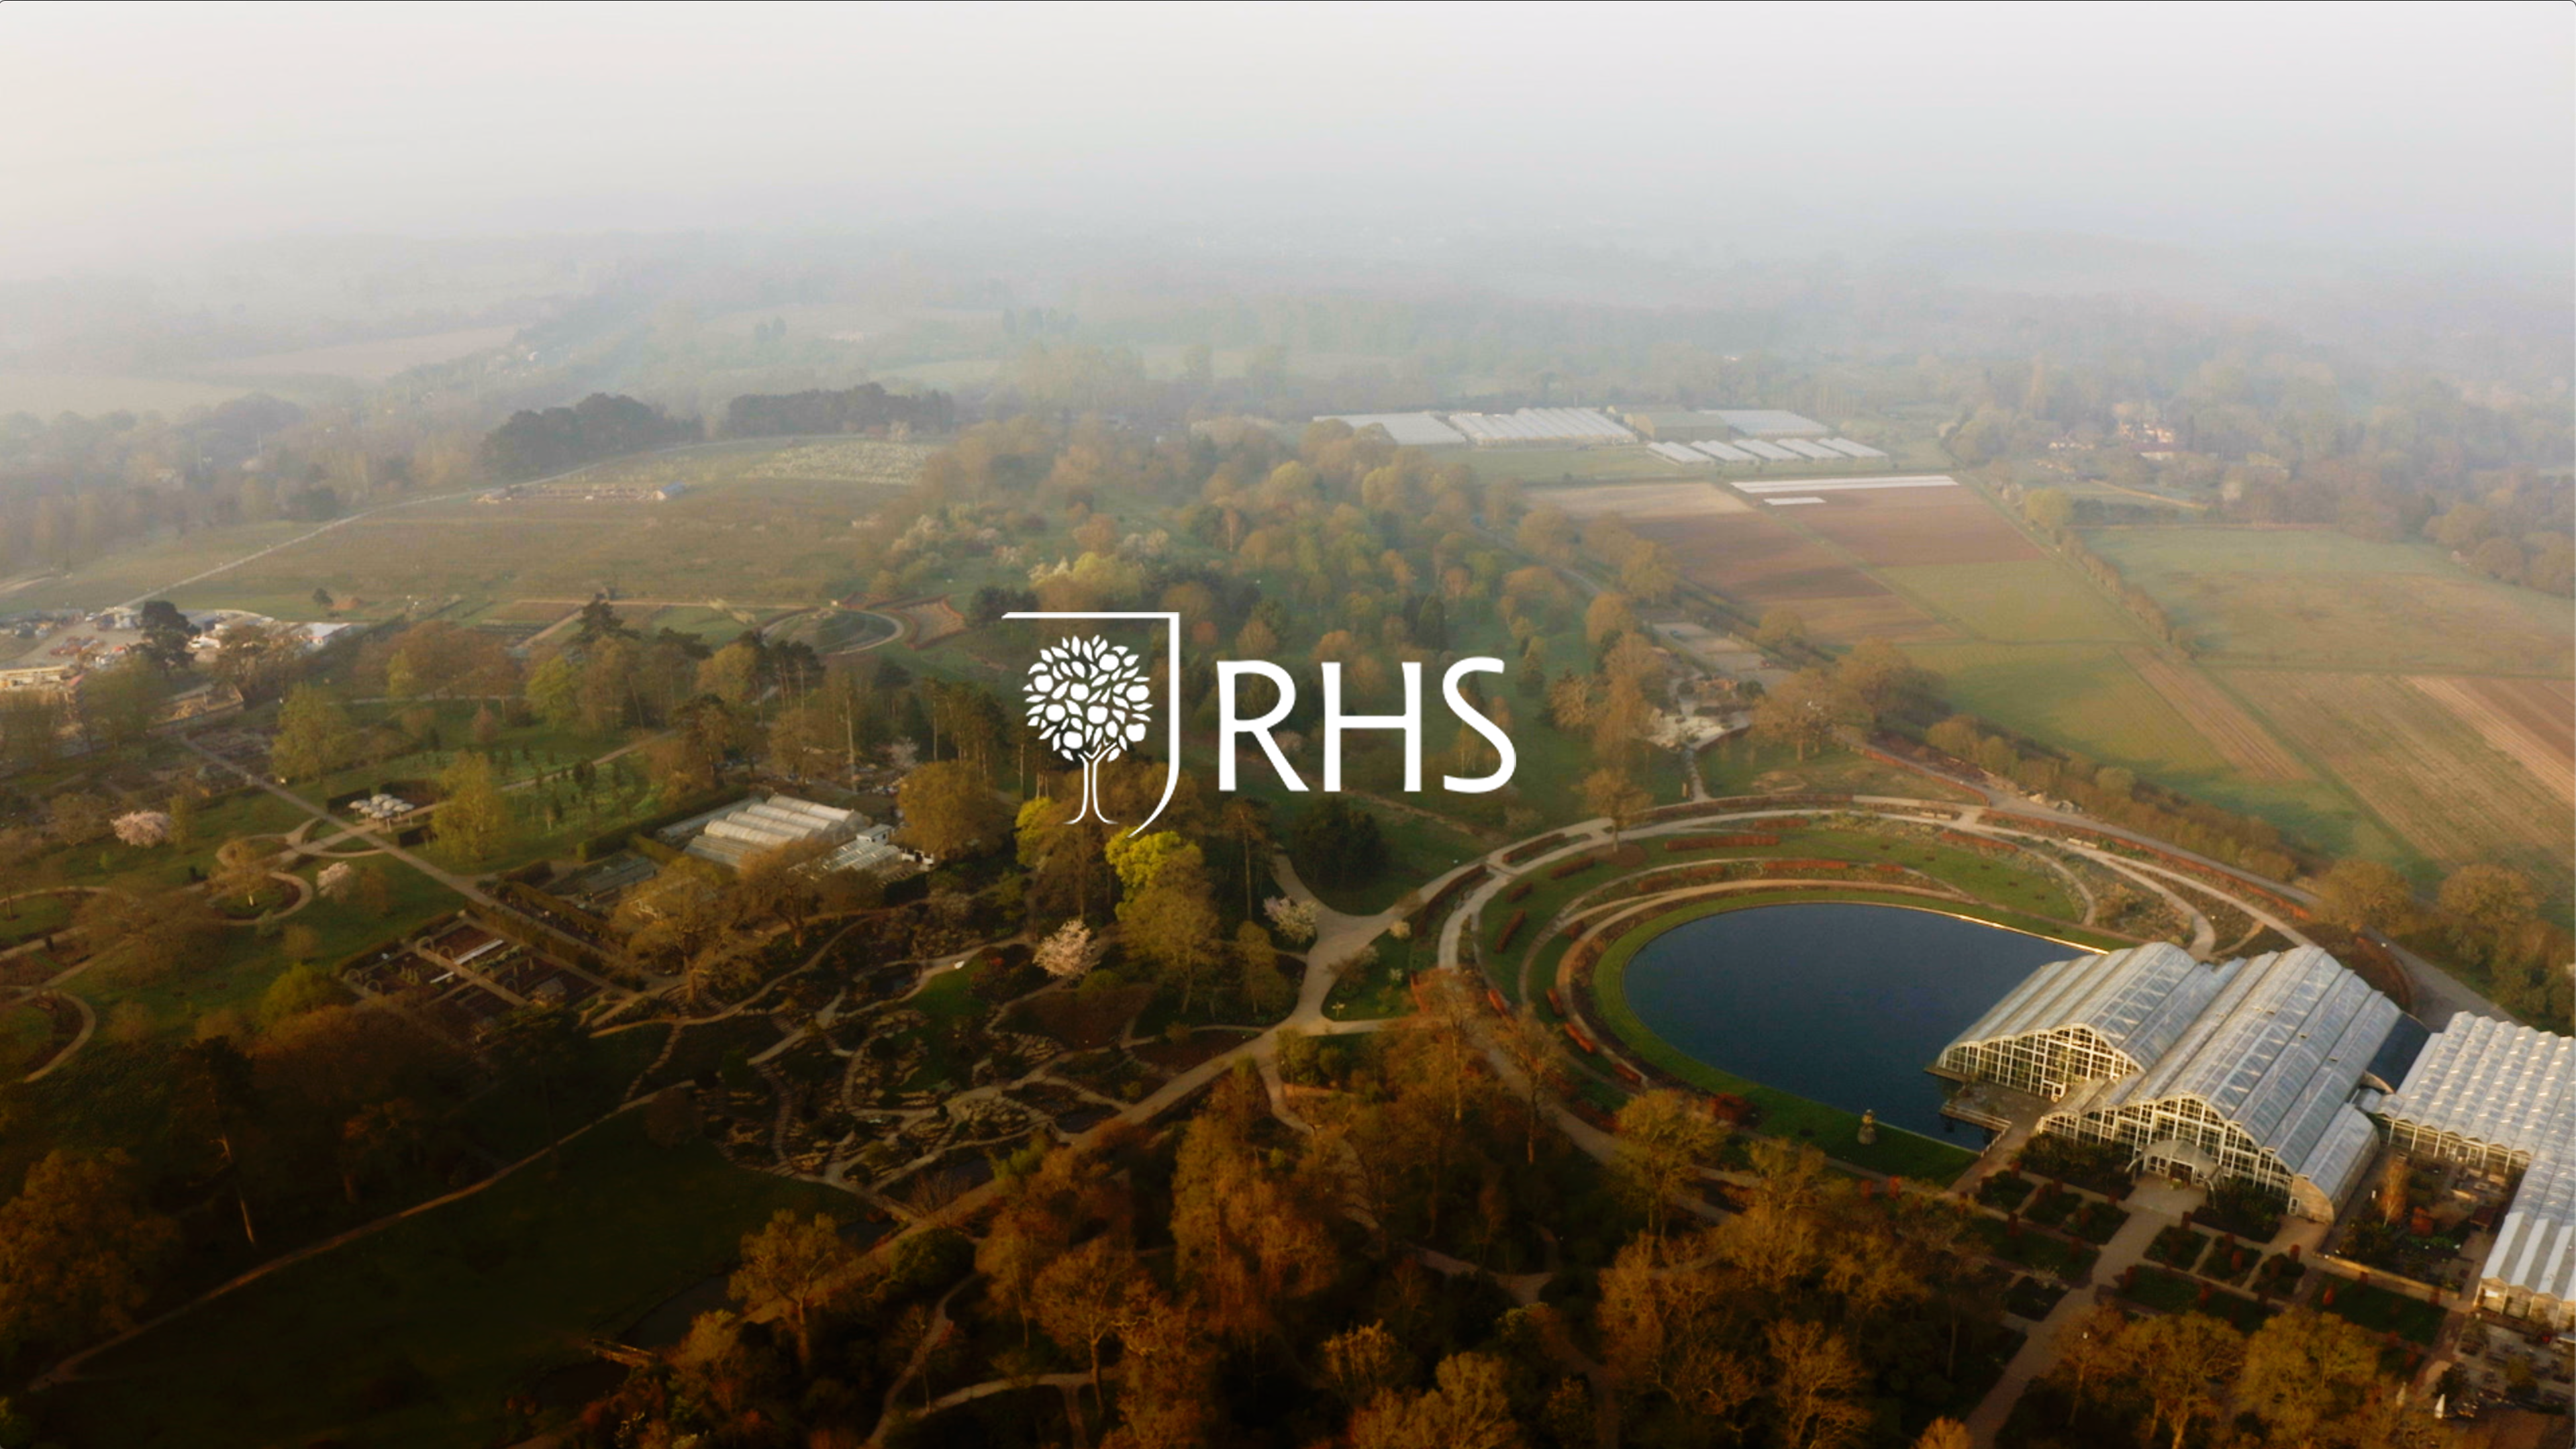 DoP: Callum Mair (The Royal Horticultural Society)